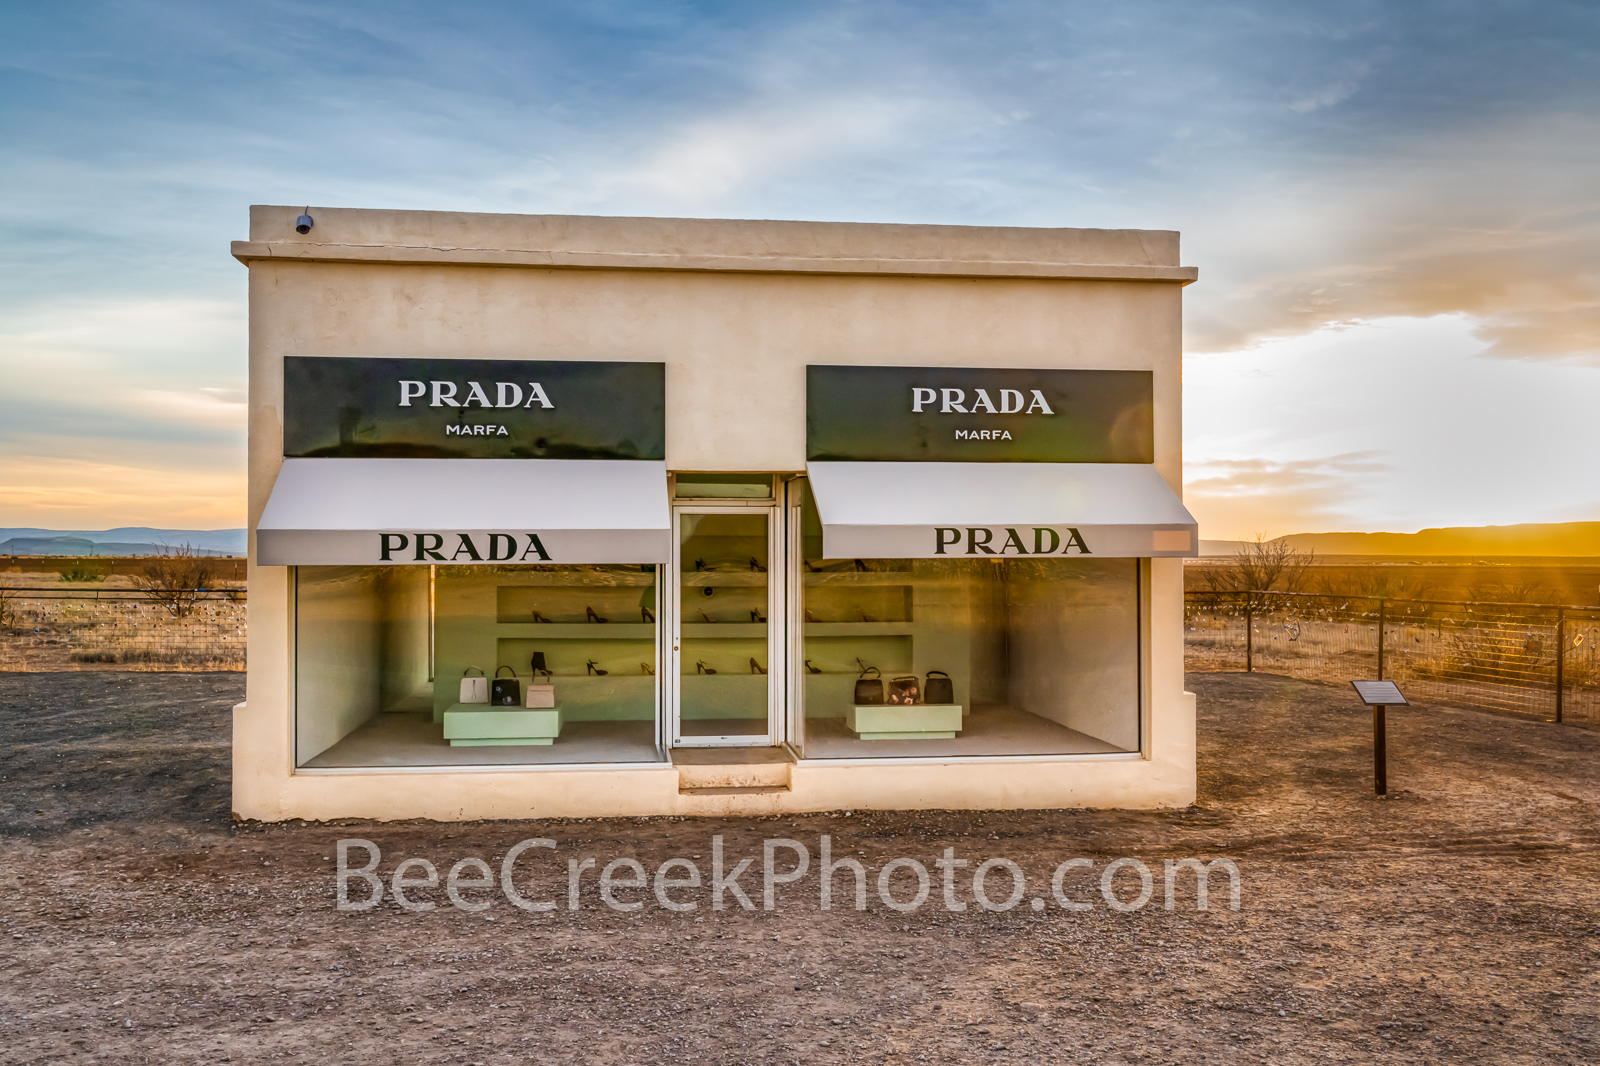 West Texas Prada  - This images captures the Marfa Prada exibit in Valentine Texas just as it sit right of the road. . Why it...